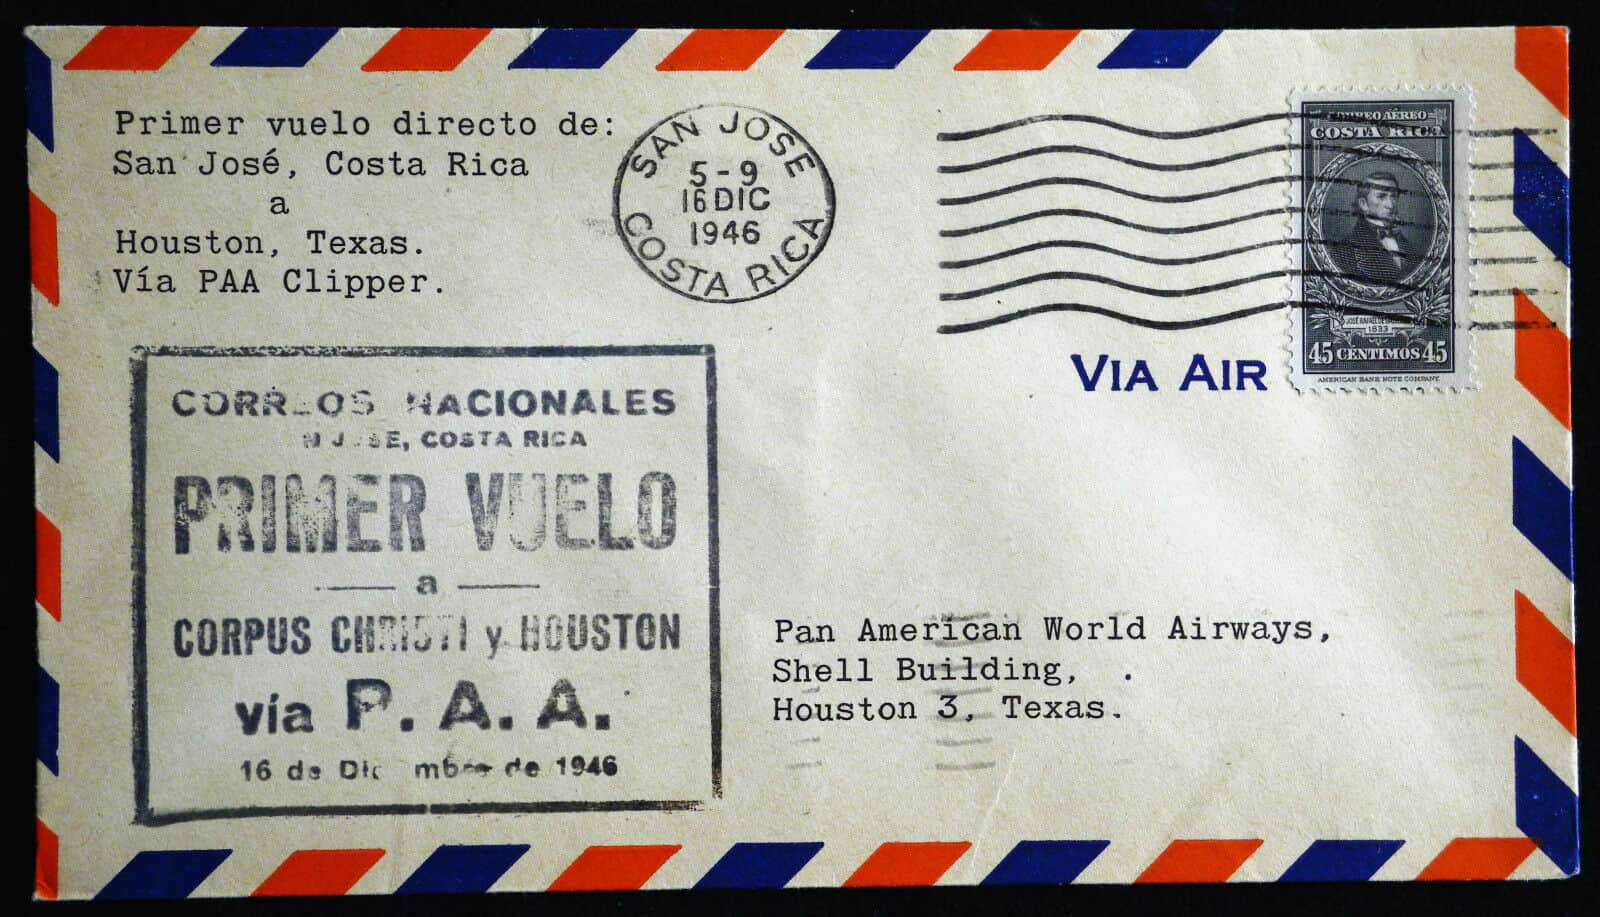 Costa Rica airmail to Texas